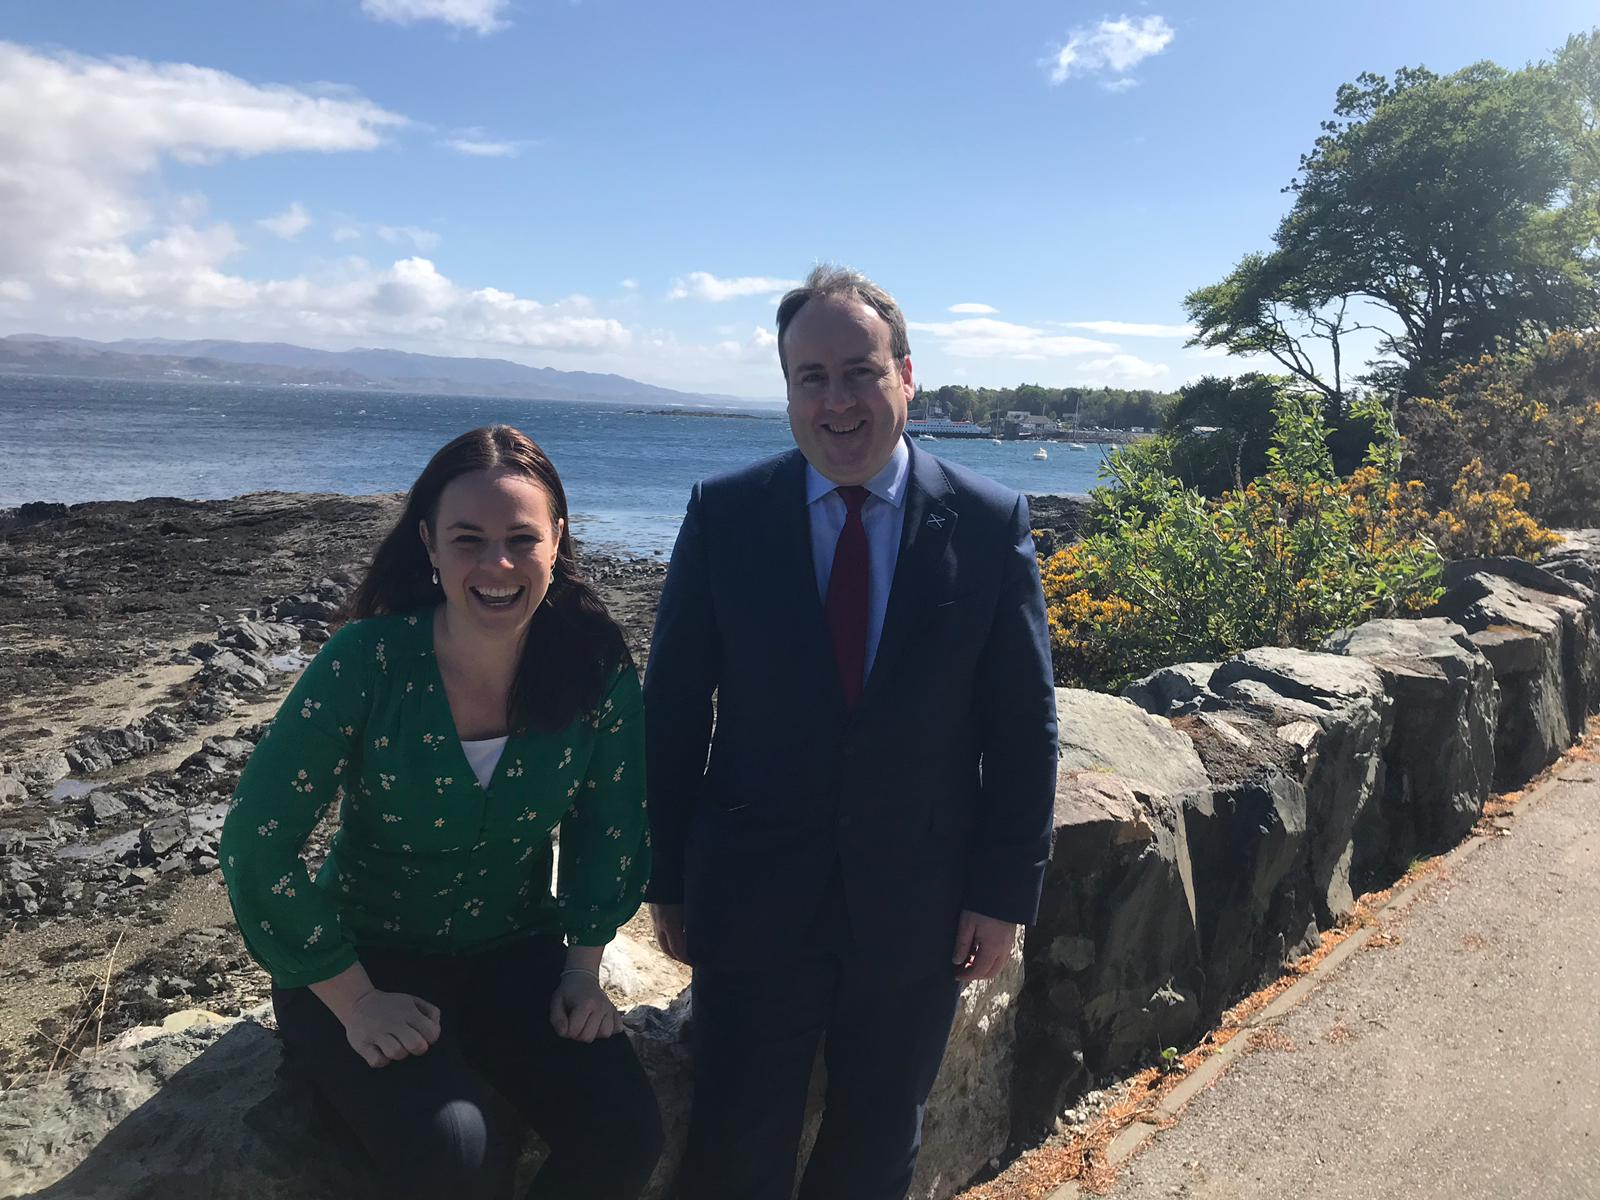 Kate Forbes MSP with Paul Wheelhouse, minister for the islands, near to the Armadale ferry terminal yesterday